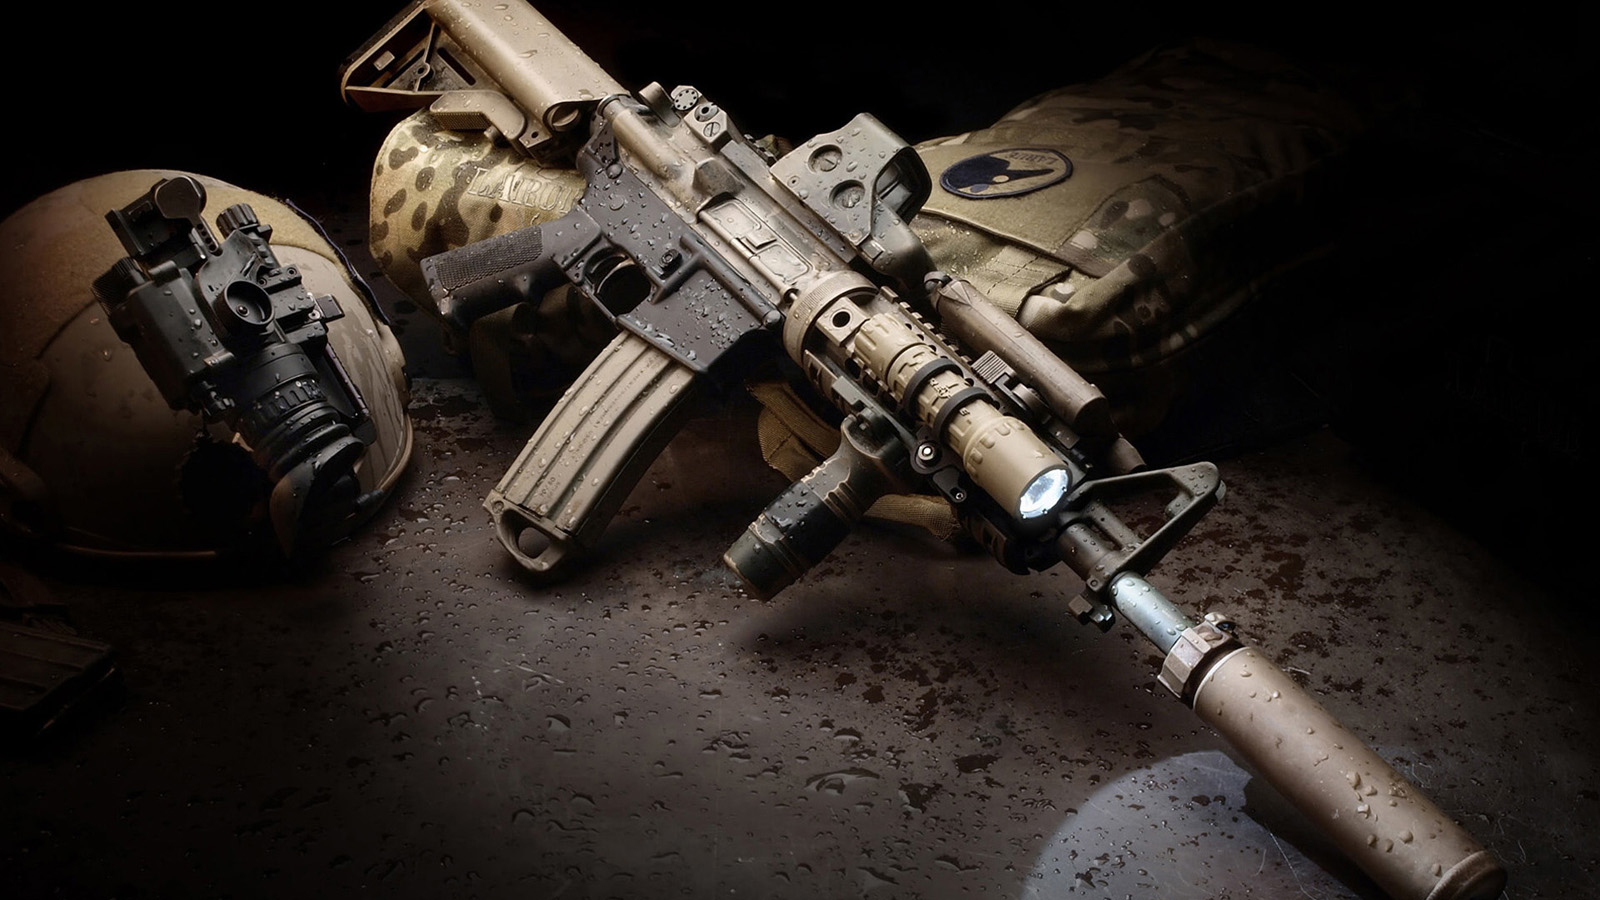 The Colt AR-15 is a lightweight, 5.56×45mm, magazine-fed, air-cooled  semi-automatic, gas-operated rifle with a rotating bolt.